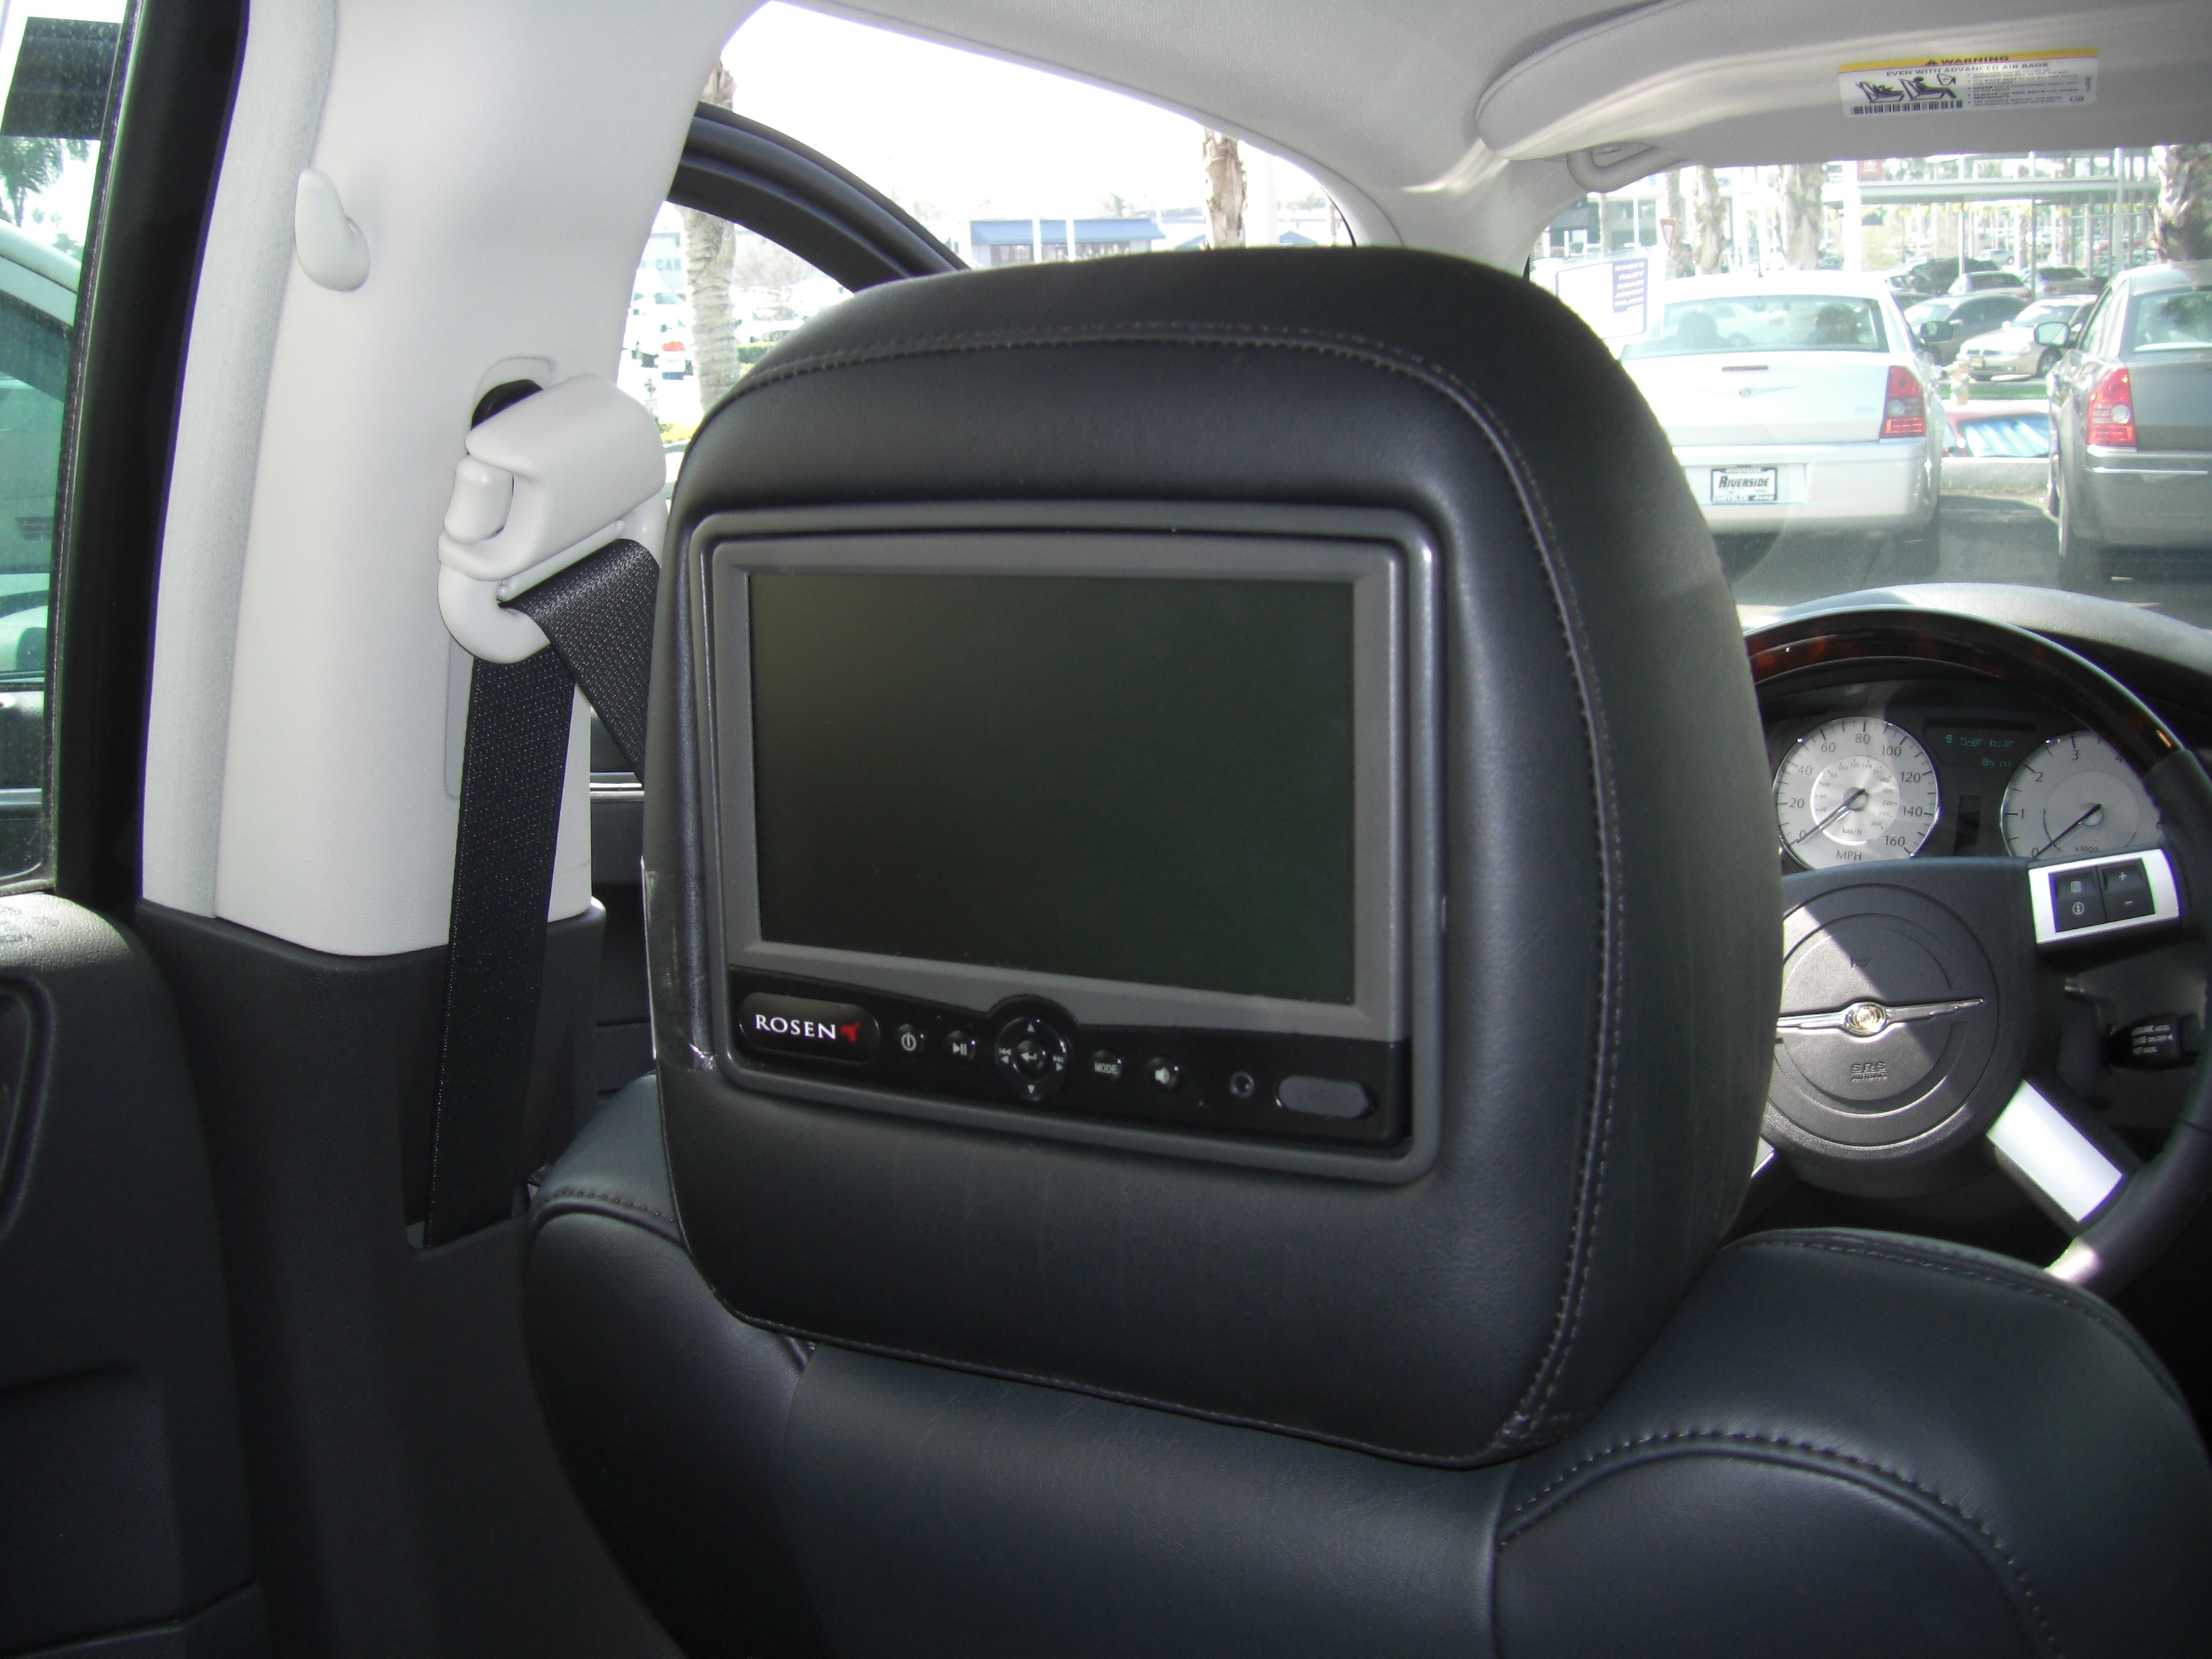 Rosen Headrest Rear Seat Entertainment Parkmyauto S Blog